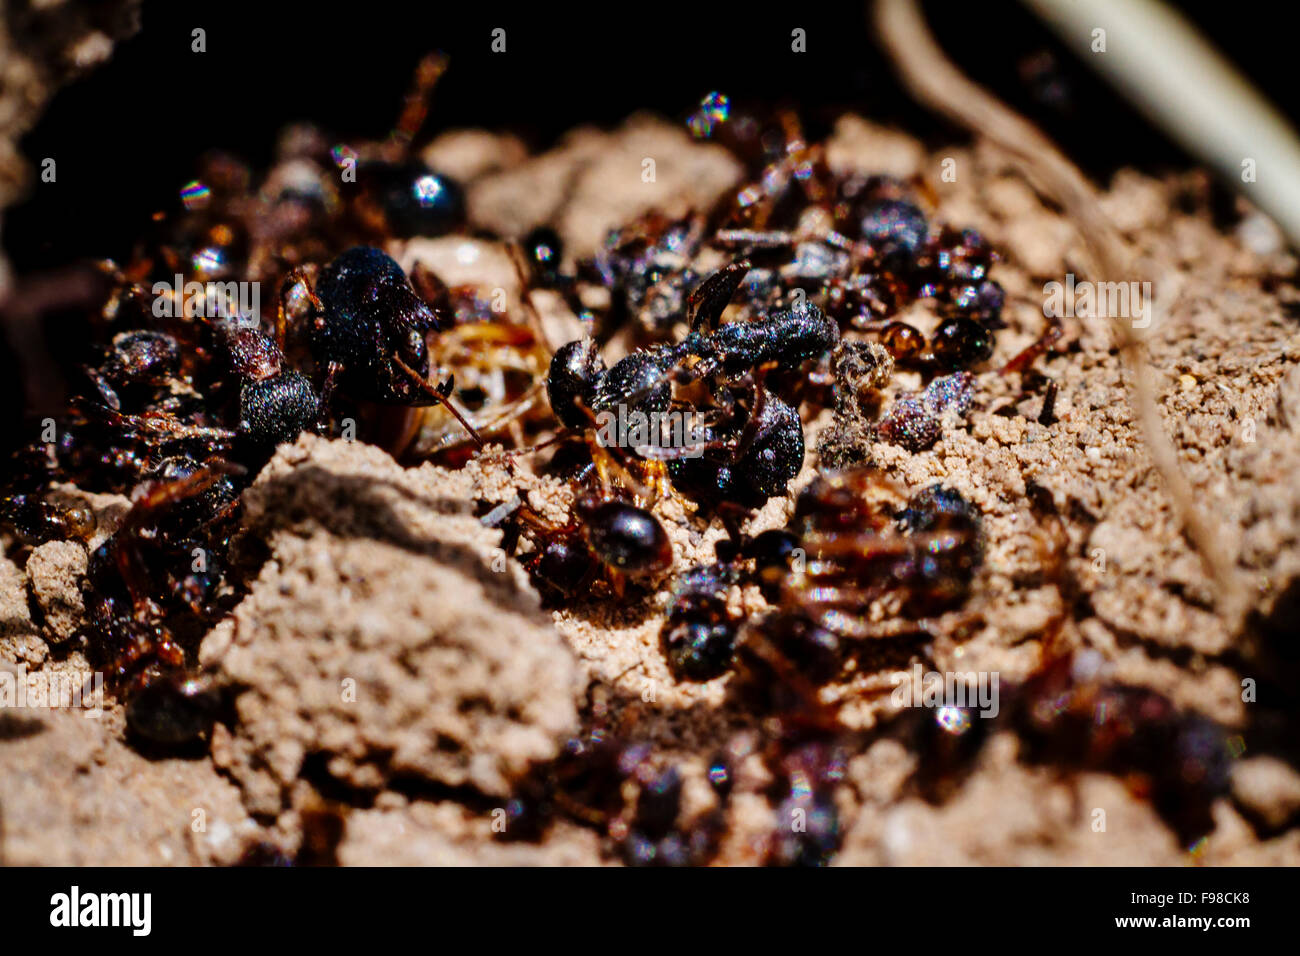 The view of many dead ants on the ground. - Stock Image